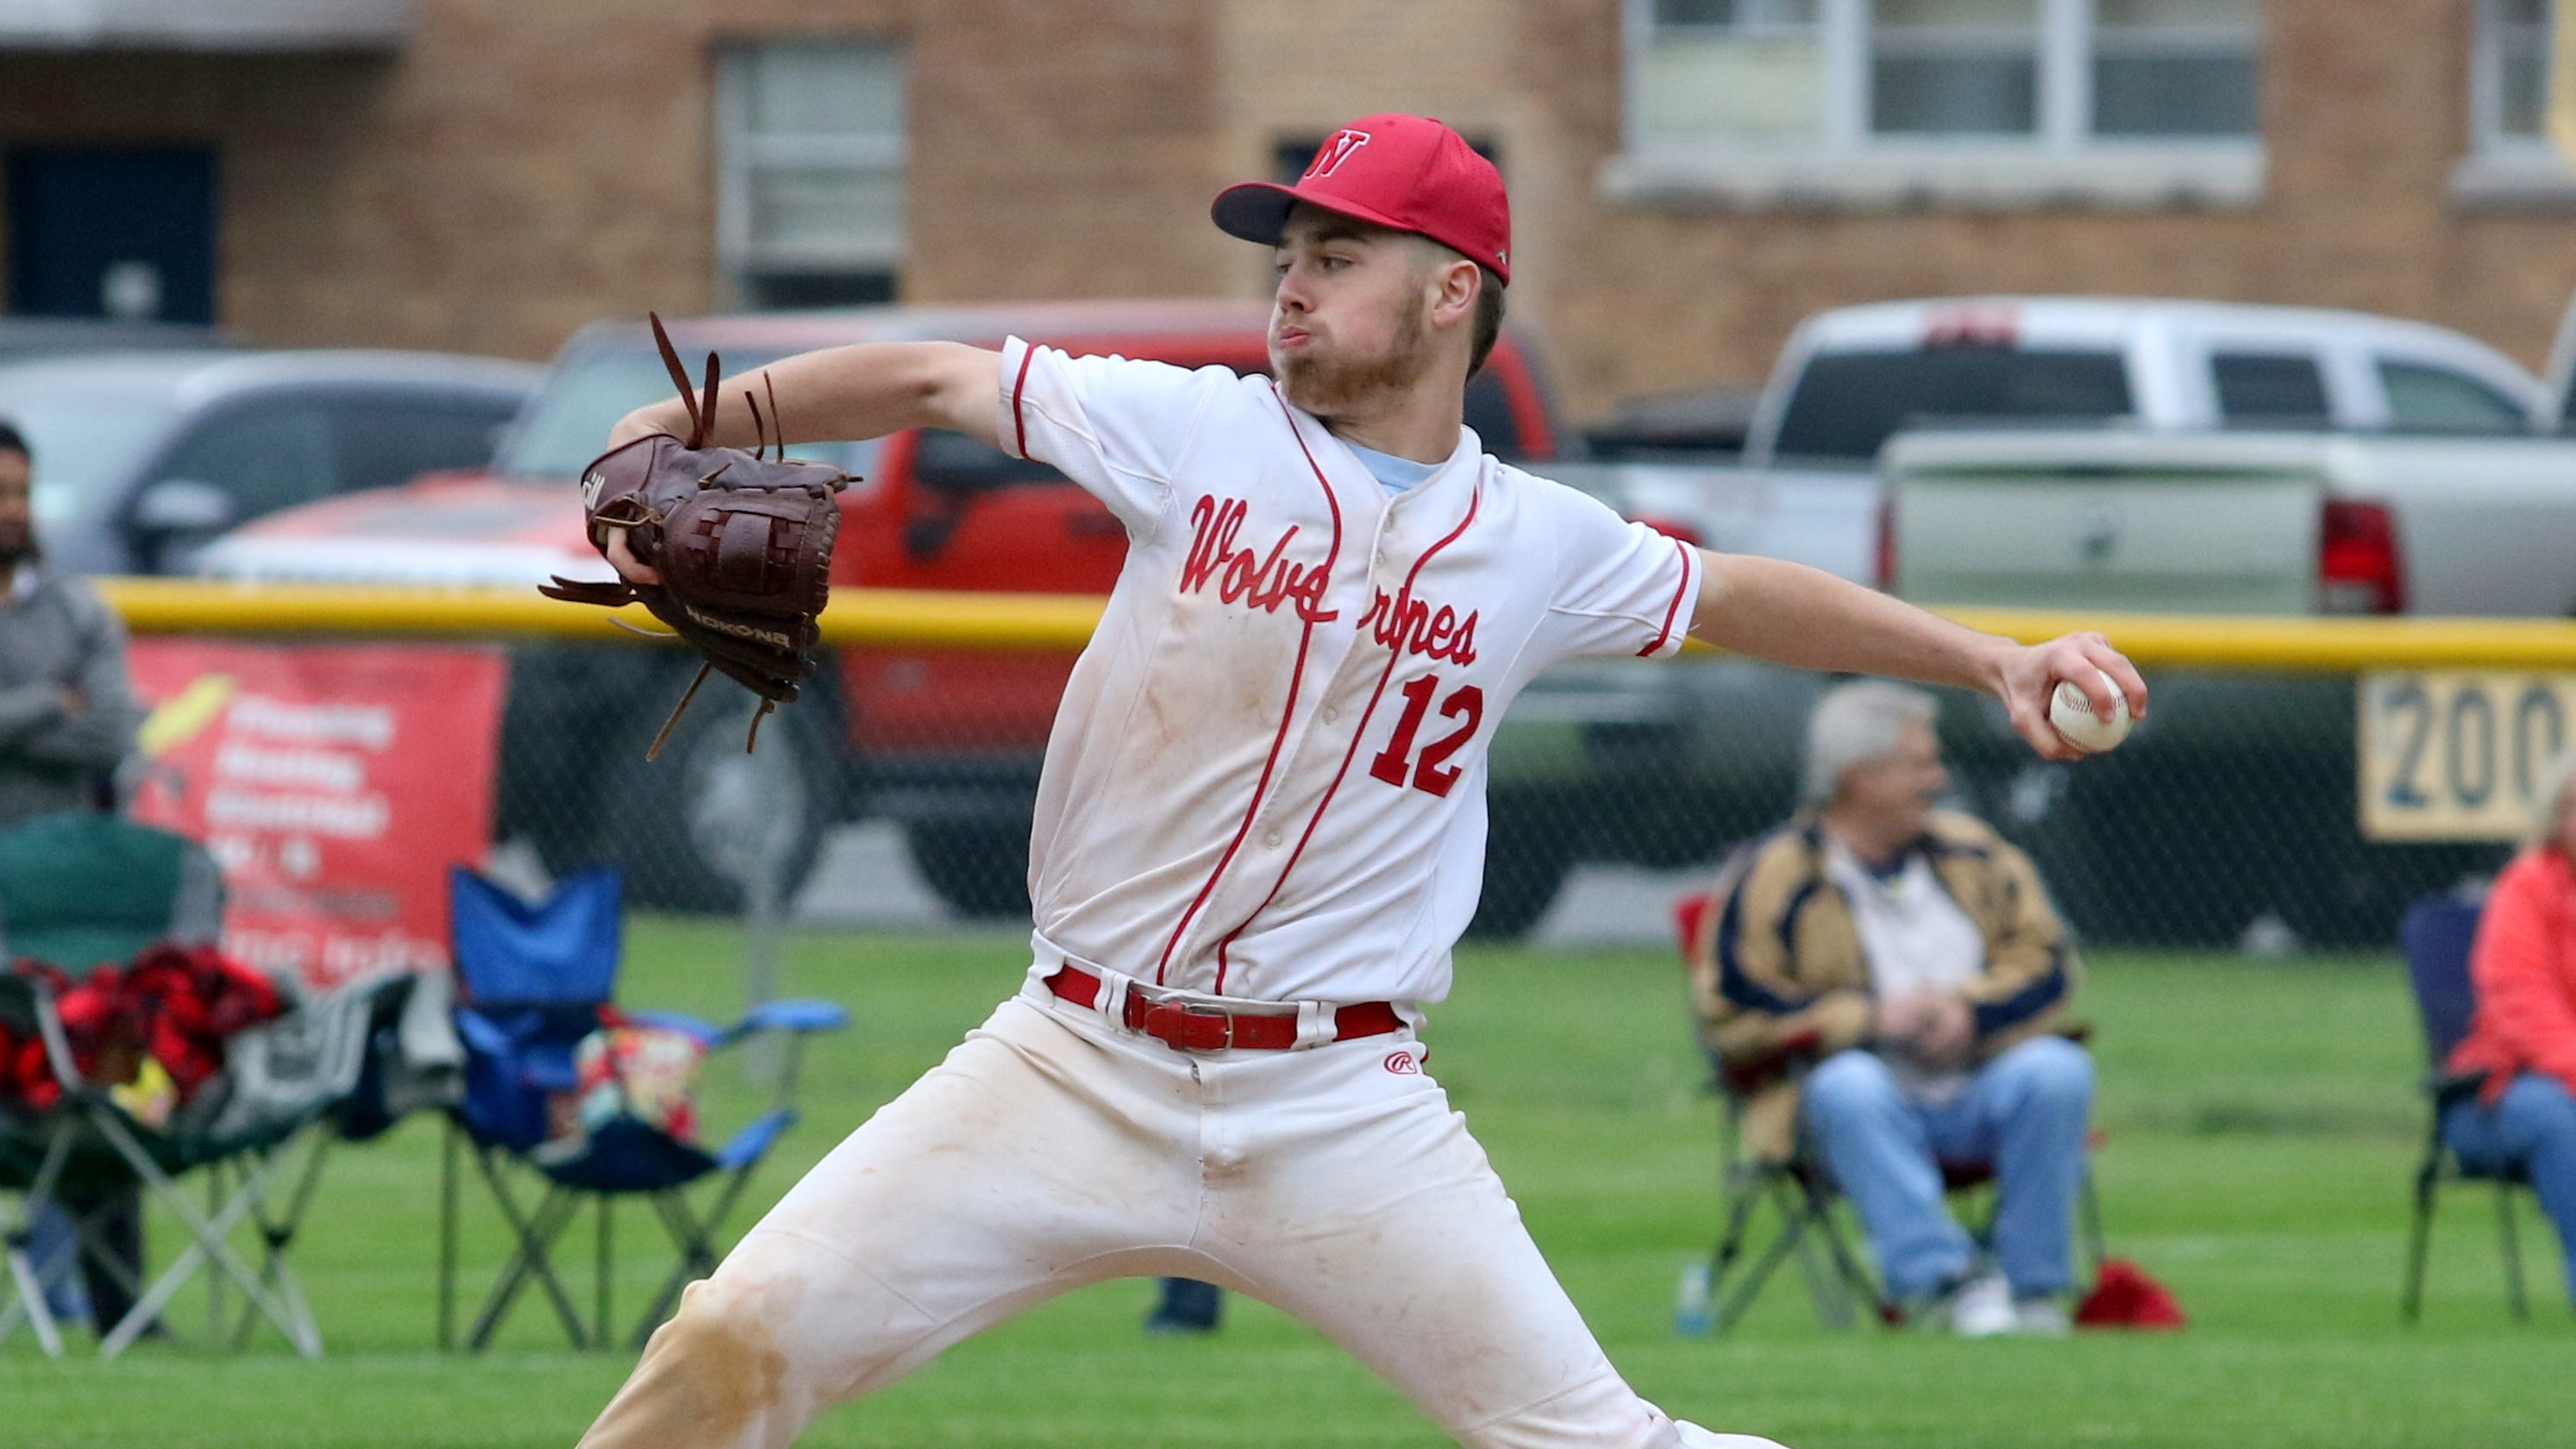 Waverly captures division title with baseball victory over